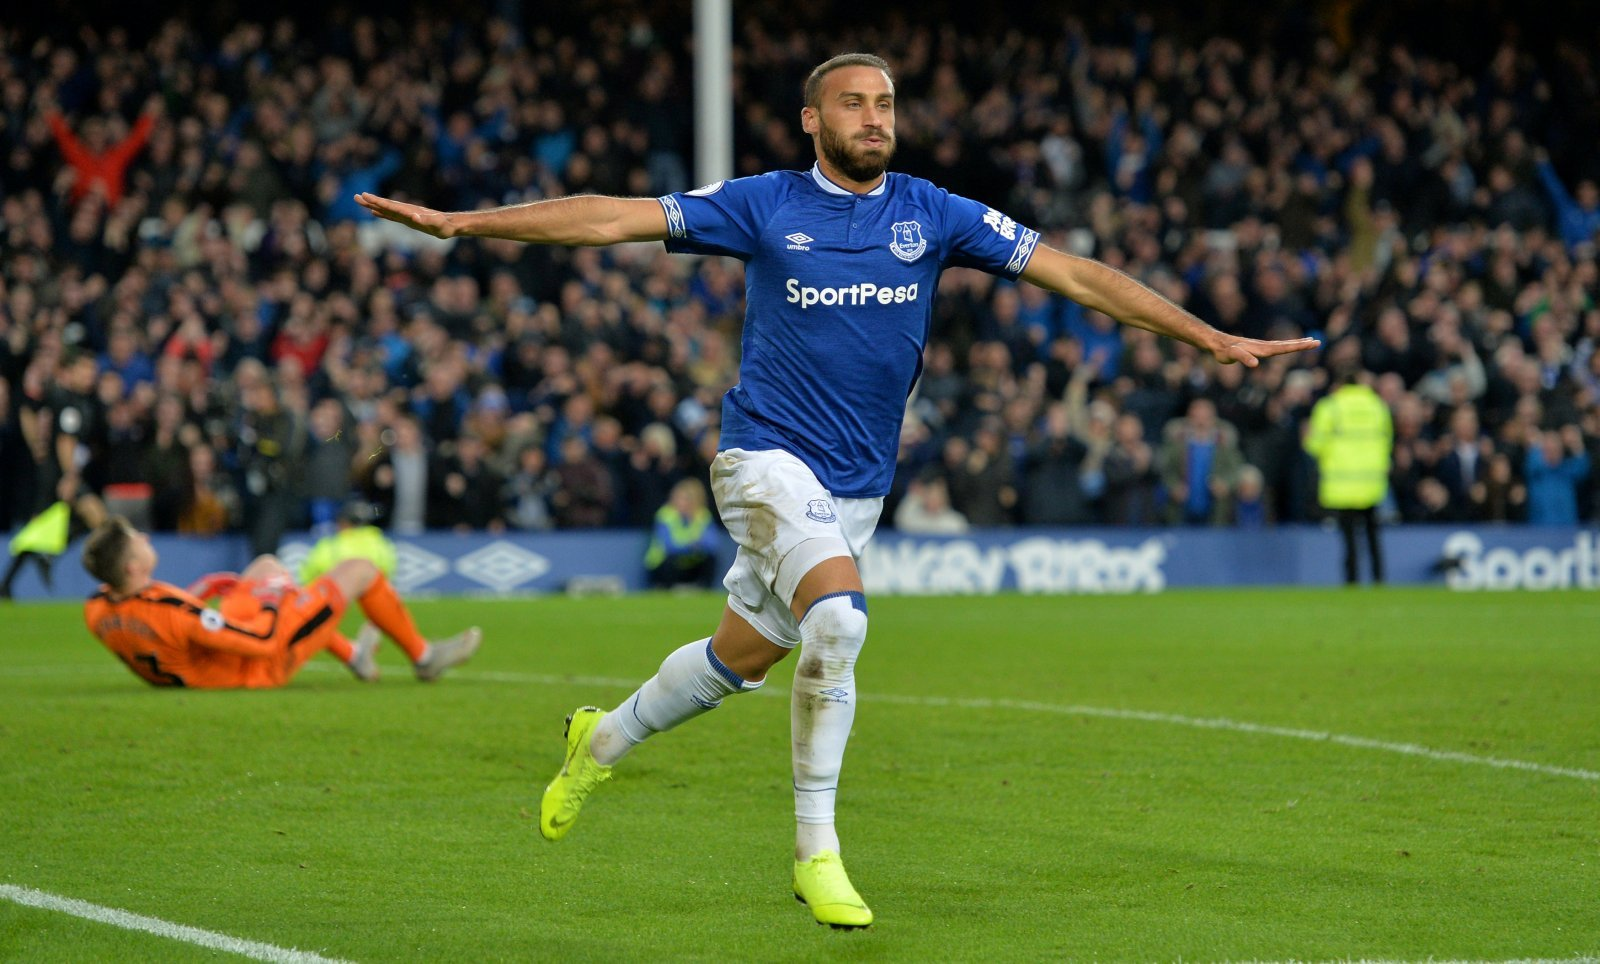 Everton: Cenk Tosun among list of players to be sold